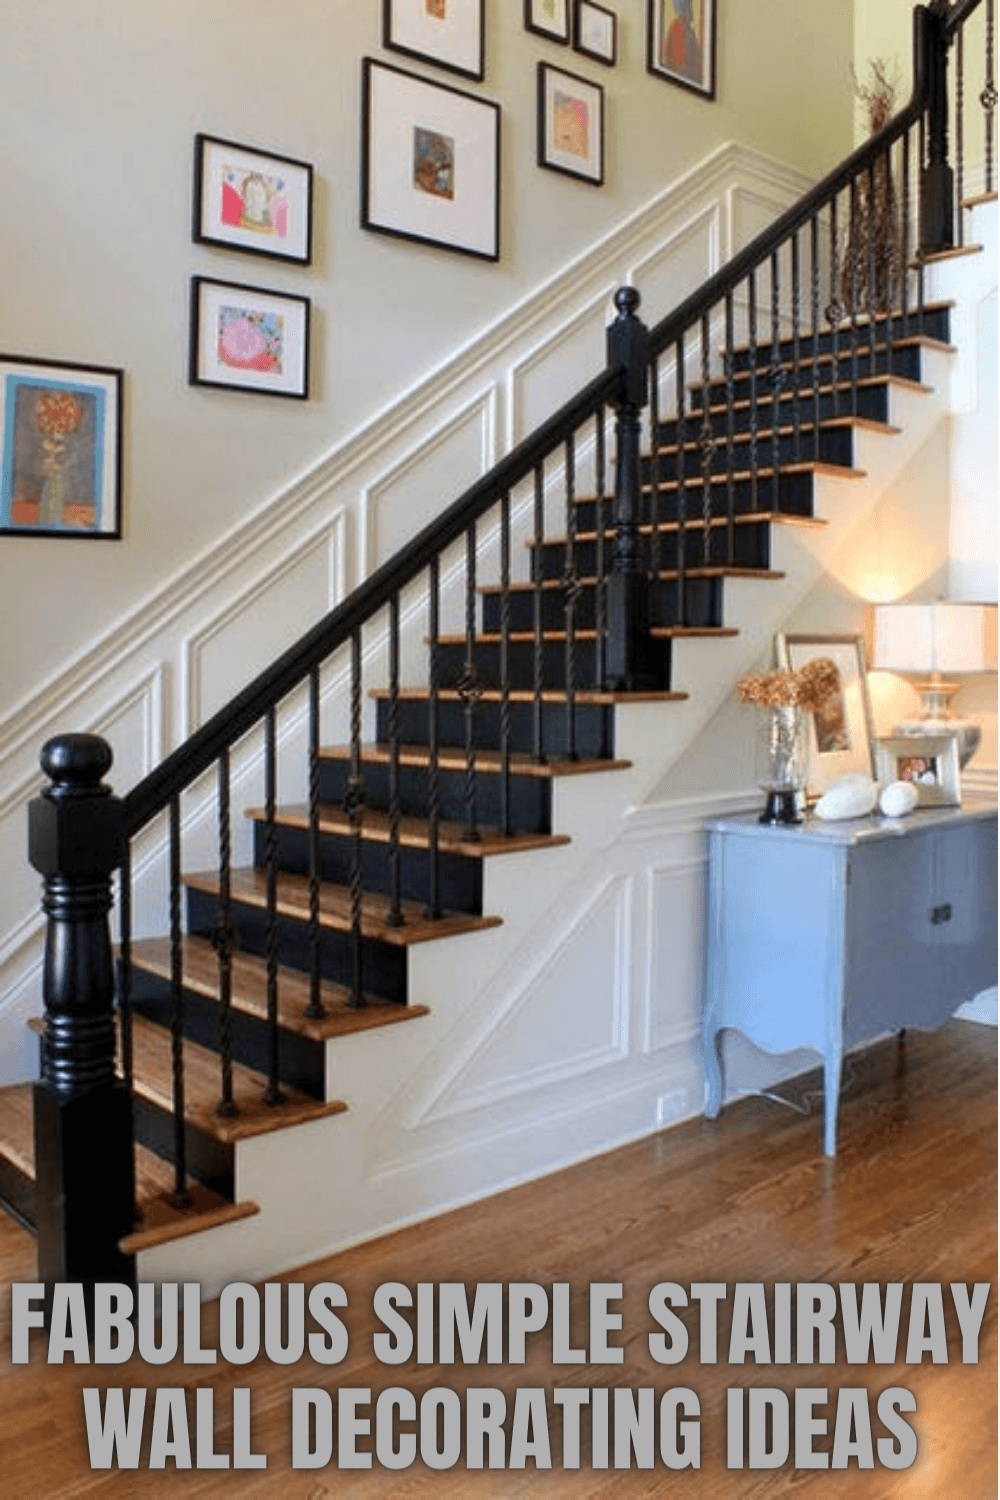 FABULOUS SIMPLE STAIRWAY WALL DECORATING IDEAS